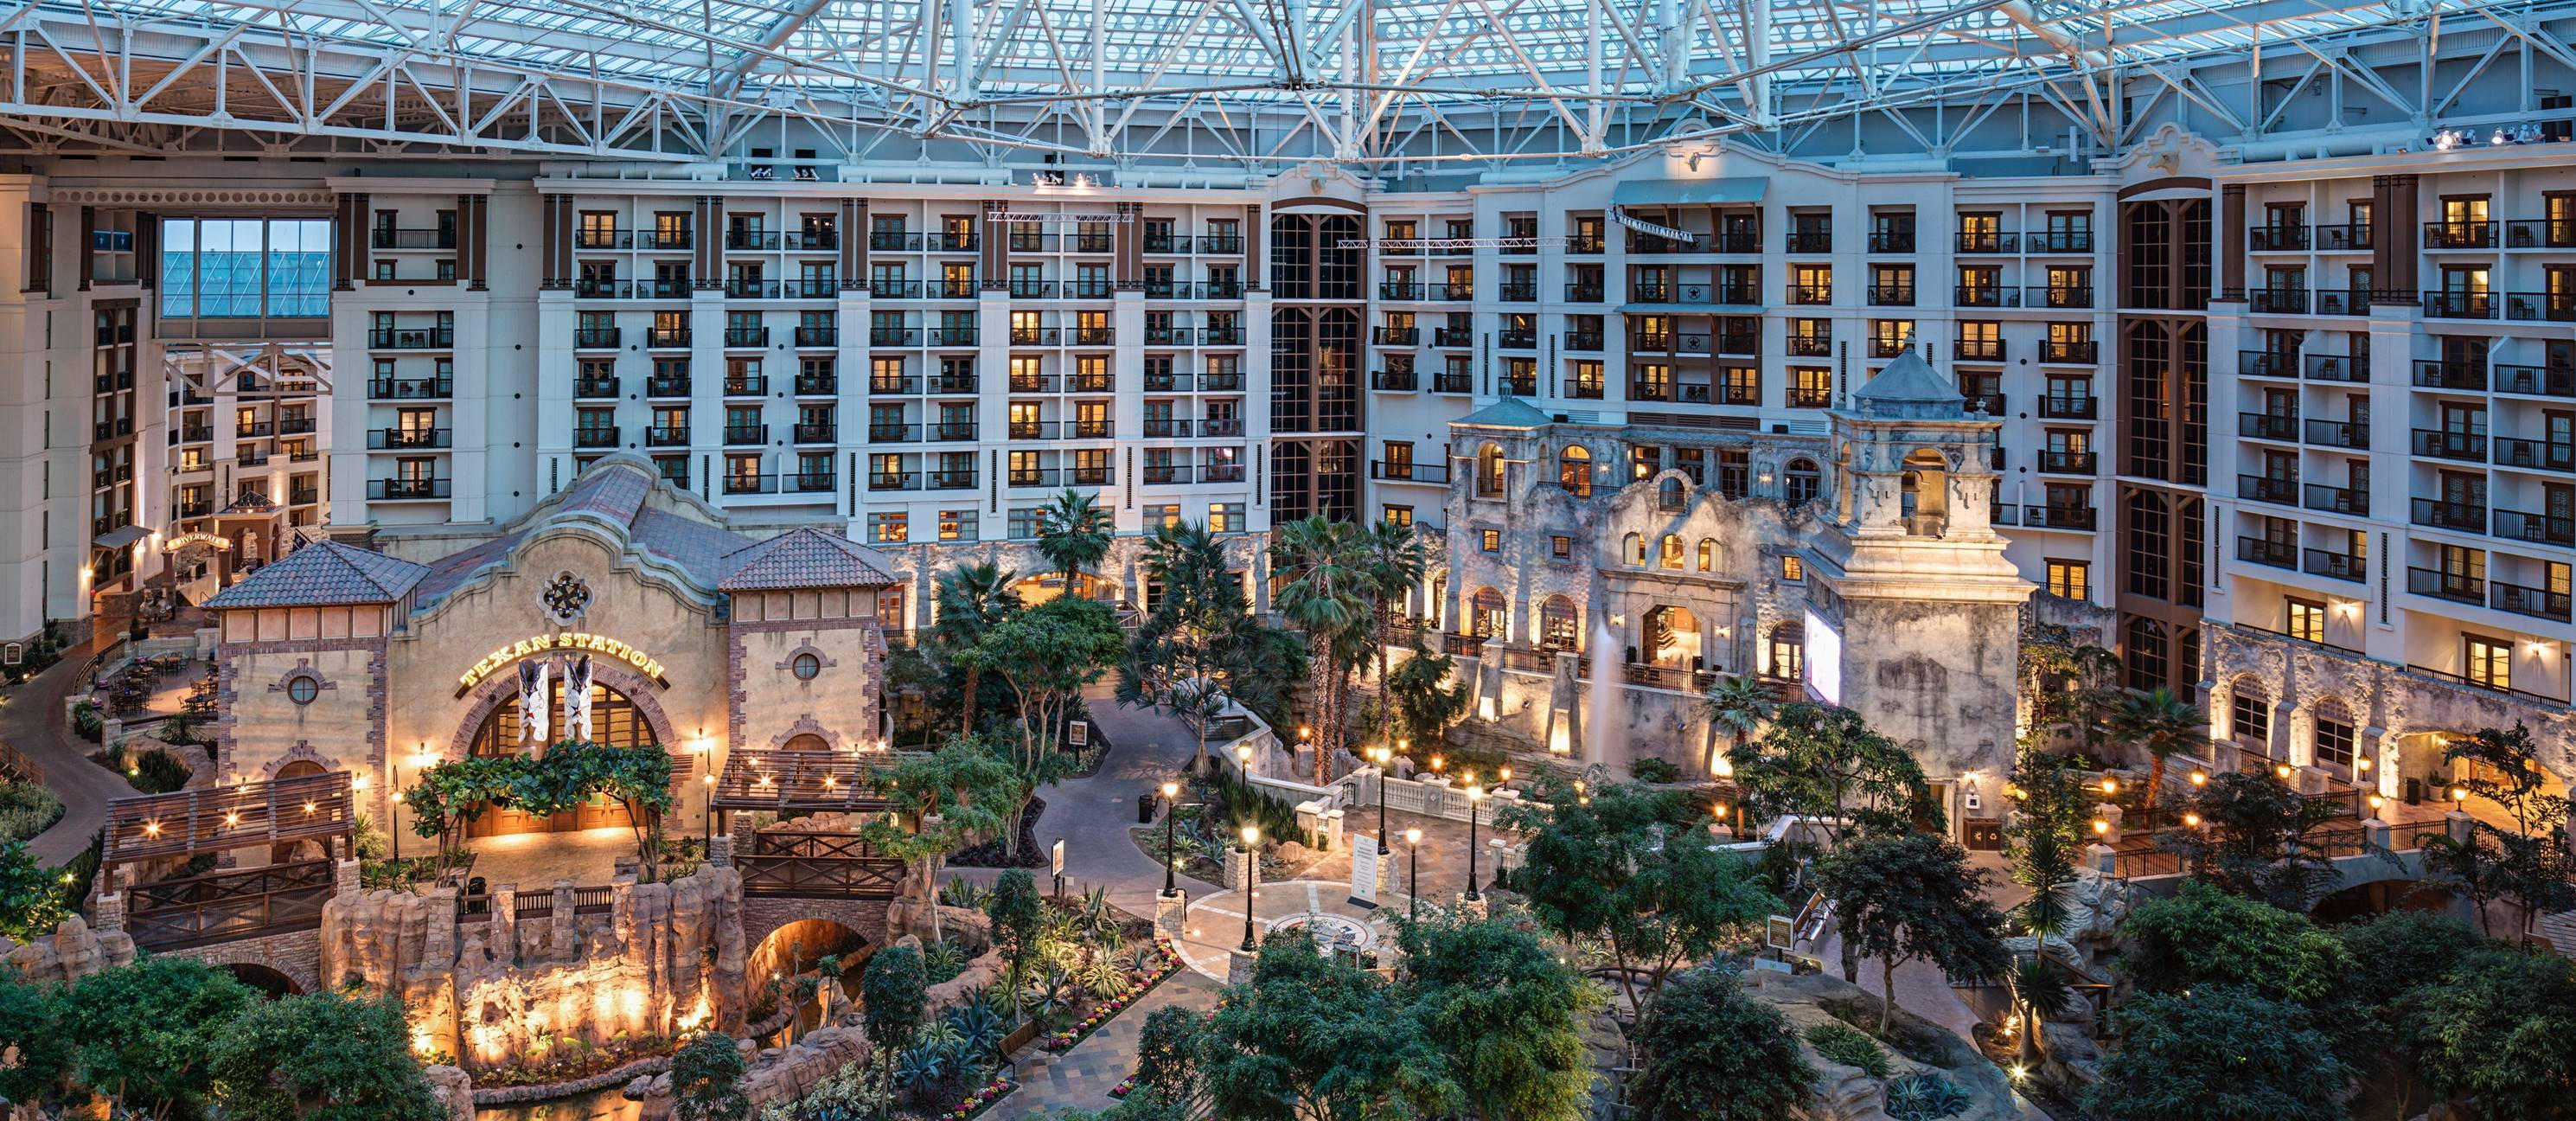 , Expansive Gaylord Hotels Re-Open Today Marking a Positive Return for the Hospitality Industry, For Immediate Release | Official News Wire for the Travel Industry, For Immediate Release | Official News Wire for the Travel Industry